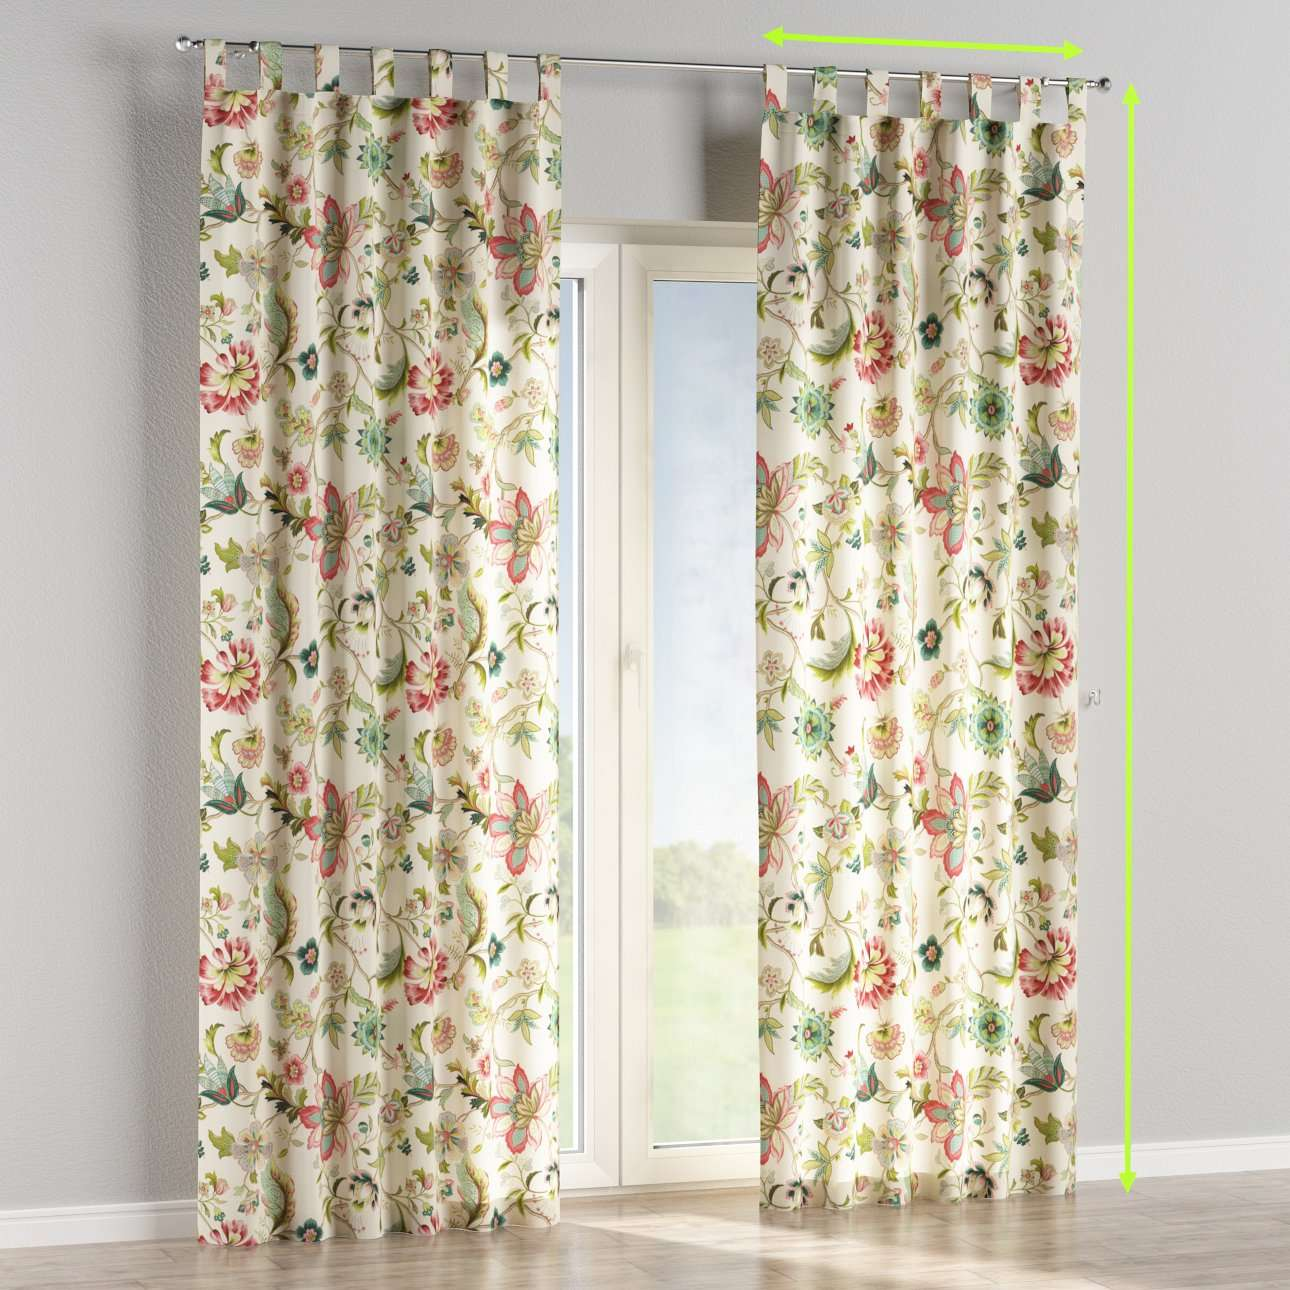 Tab top curtains in collection Londres, fabric: 122-00